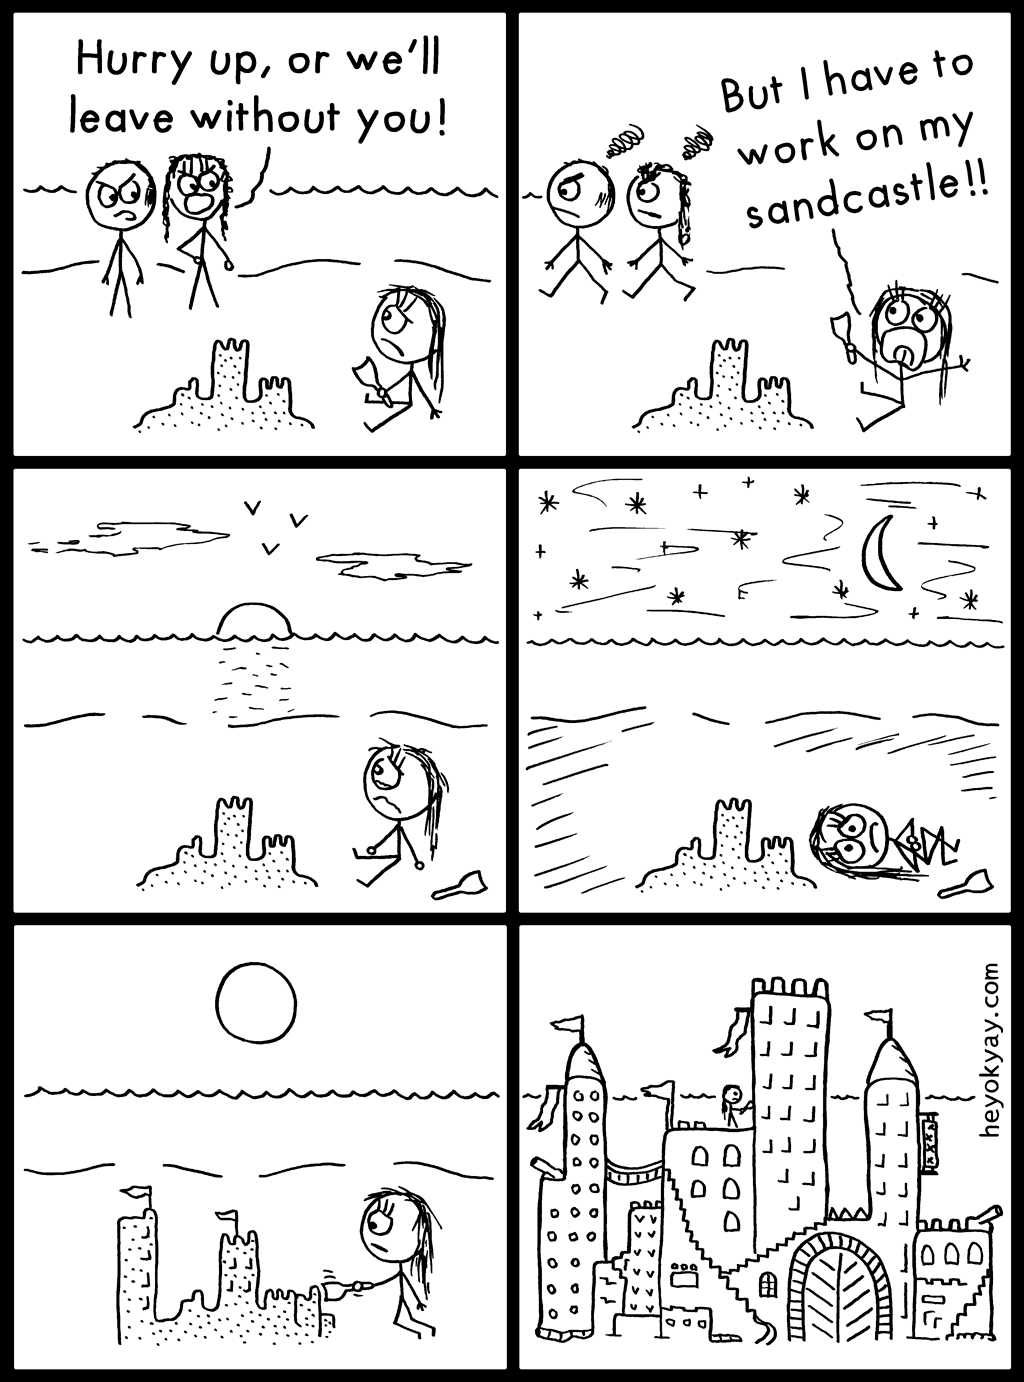 Sandcastle | Hey ok yay? | Hurry up, or we'll leave without you. But I have to work on my sandcastle! | Loneliness, left alone, beach, sea, vacation, parents, artist